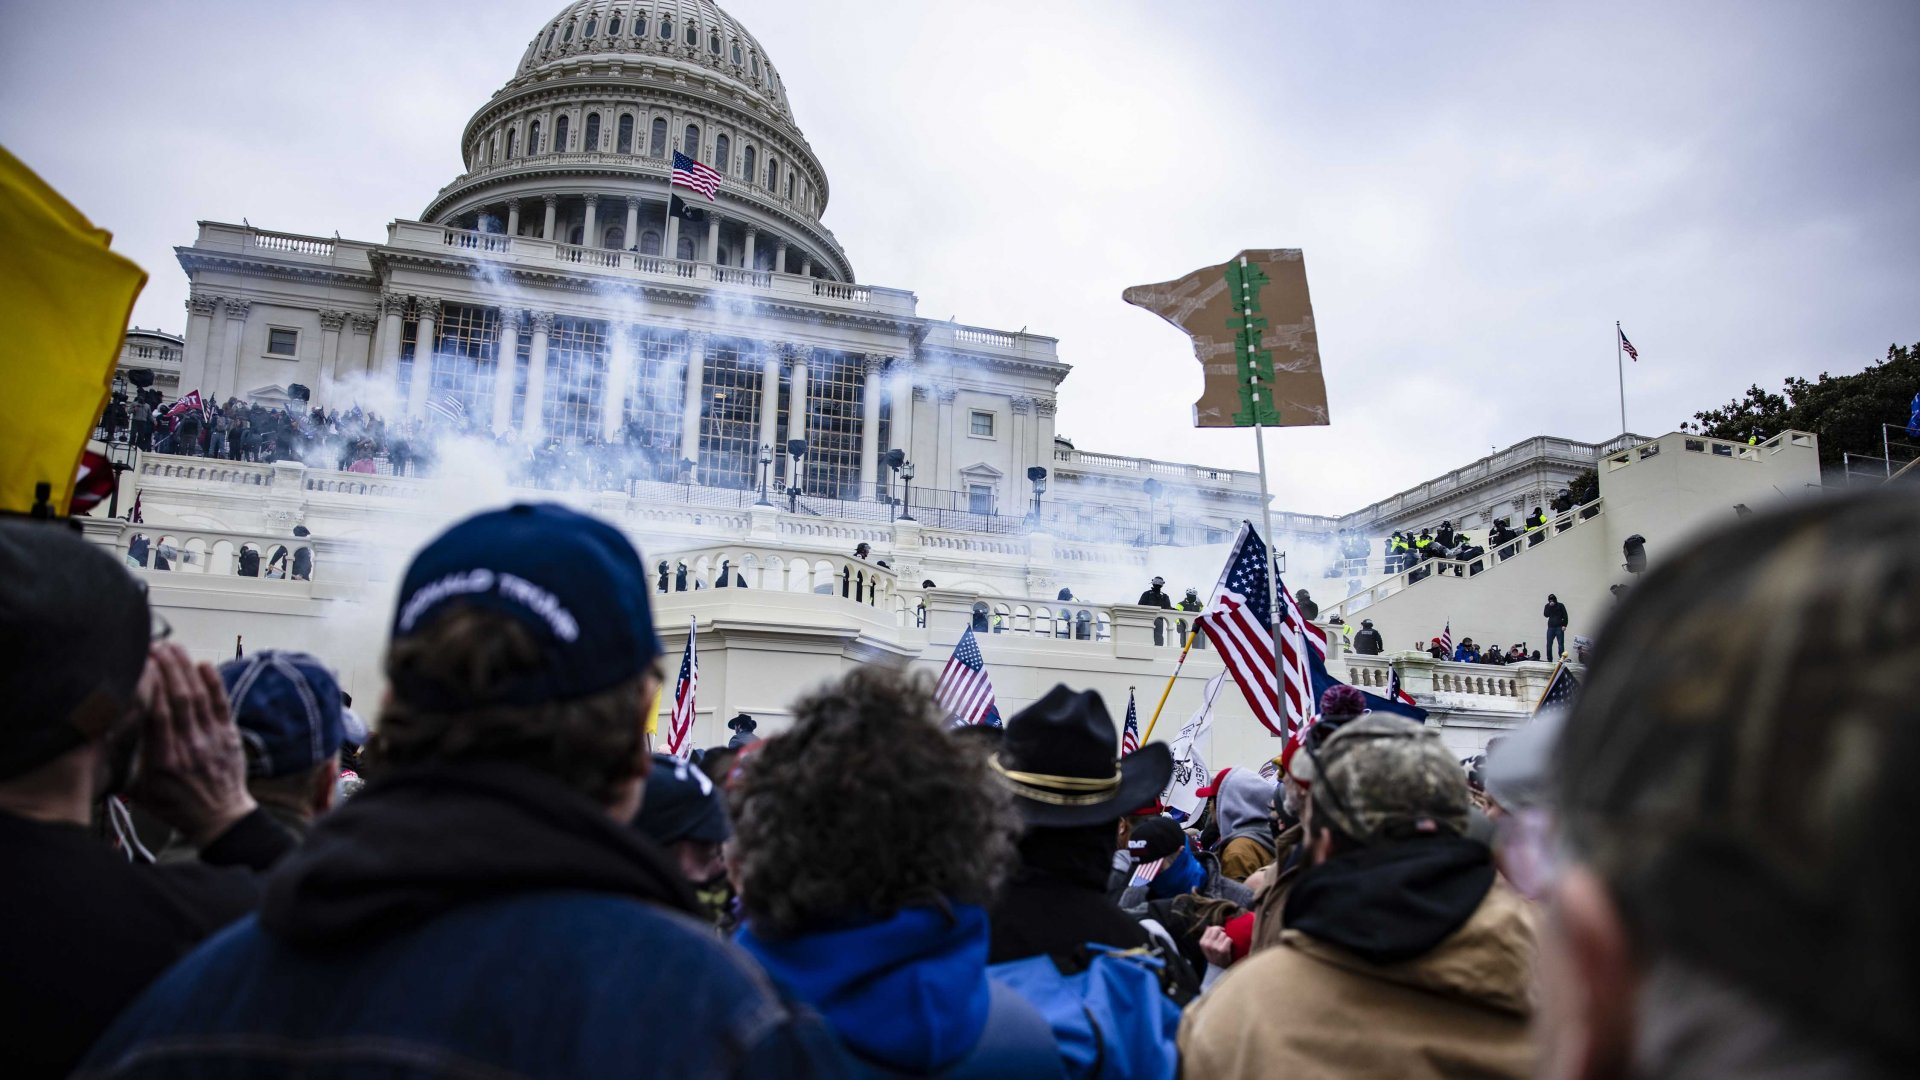 A mob enraged by the ratification of President-elect Joe Biden's Electoral College victory over President Trump in the 2020 election storms the U.S. Capitol following a rally led by Trump on January 6, 2021.